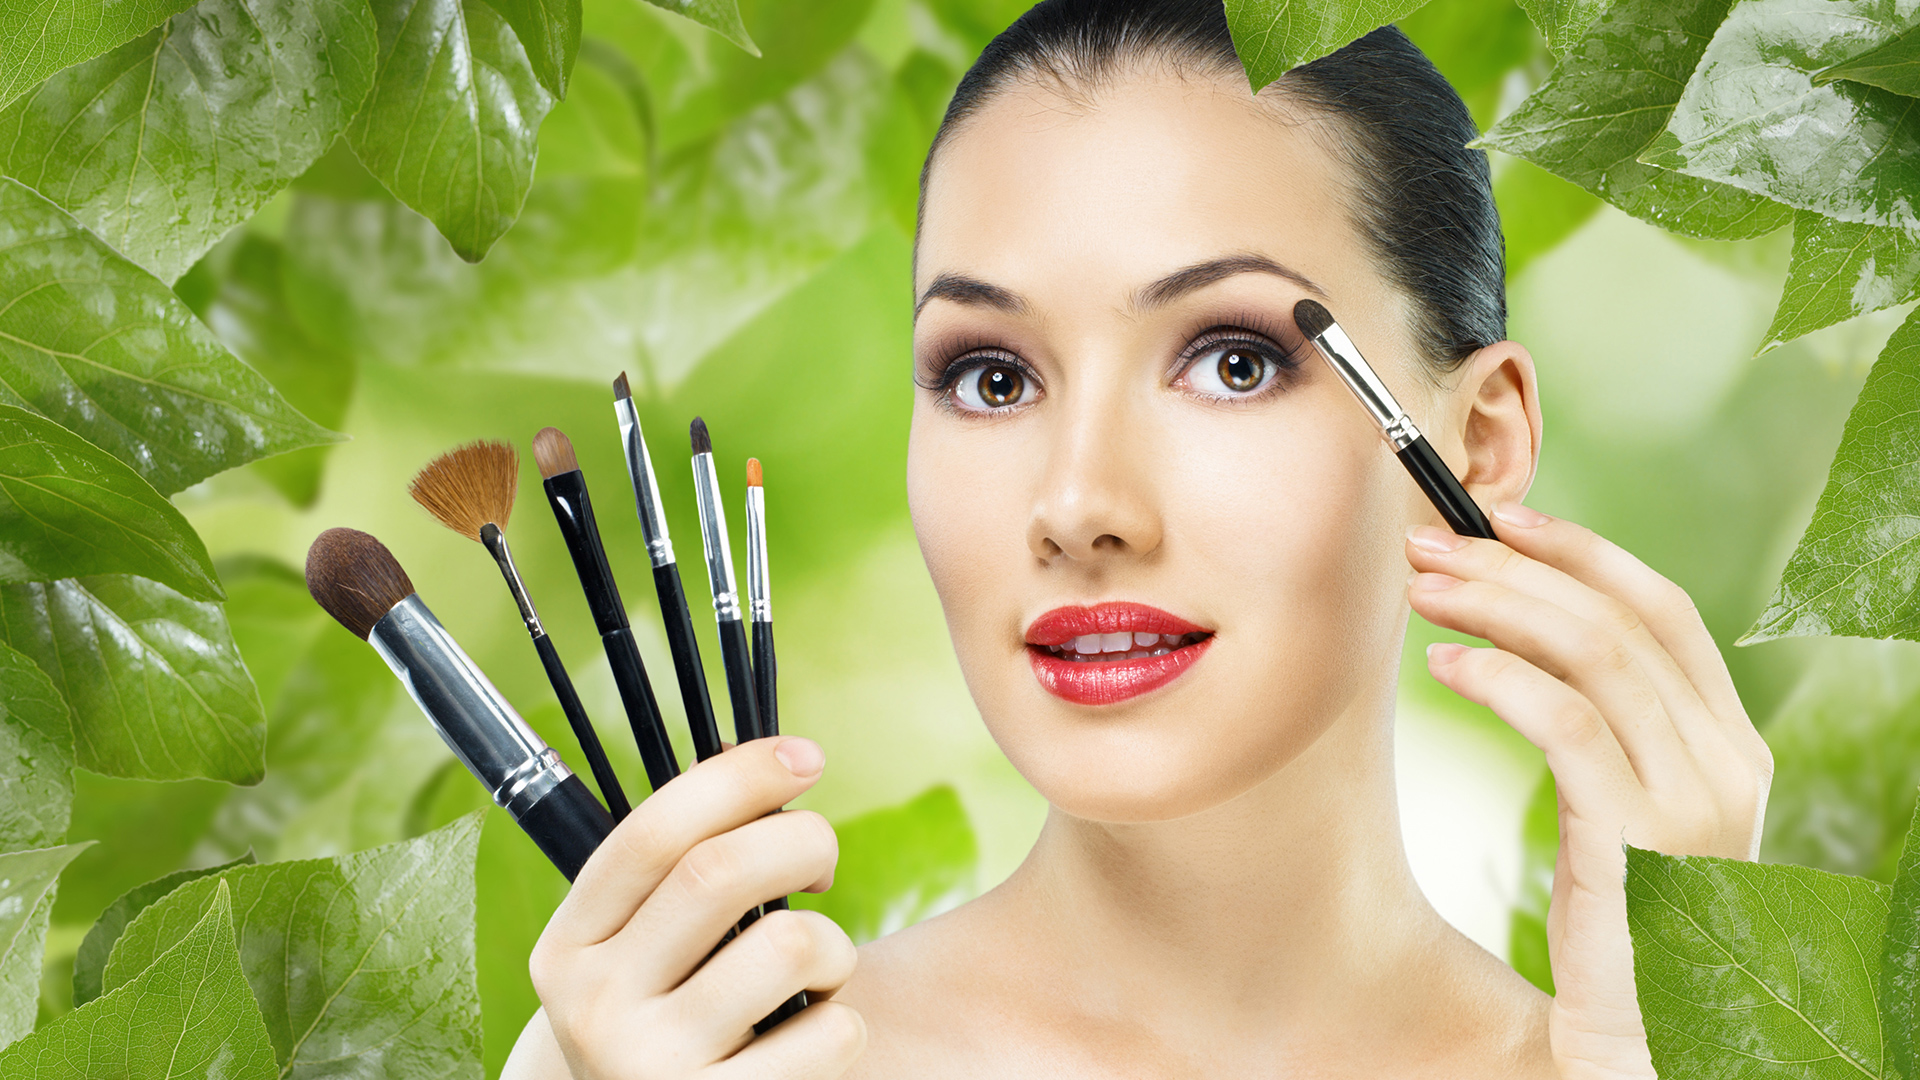 12 Everyday Beauty Tips Every Woman Needs To Know - W for Woman